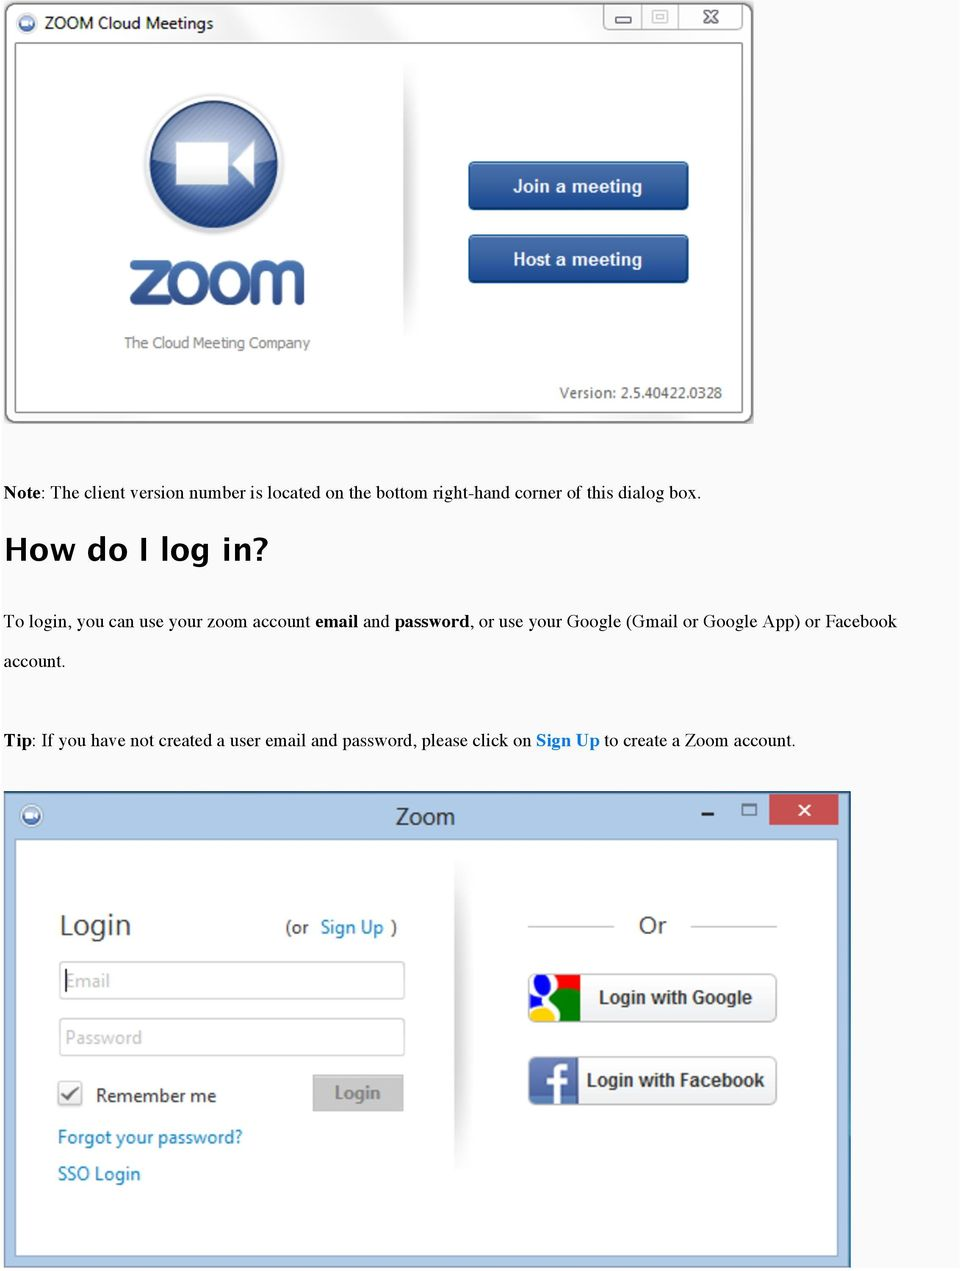 To login, you can use your zoom account email and password, or use your Google